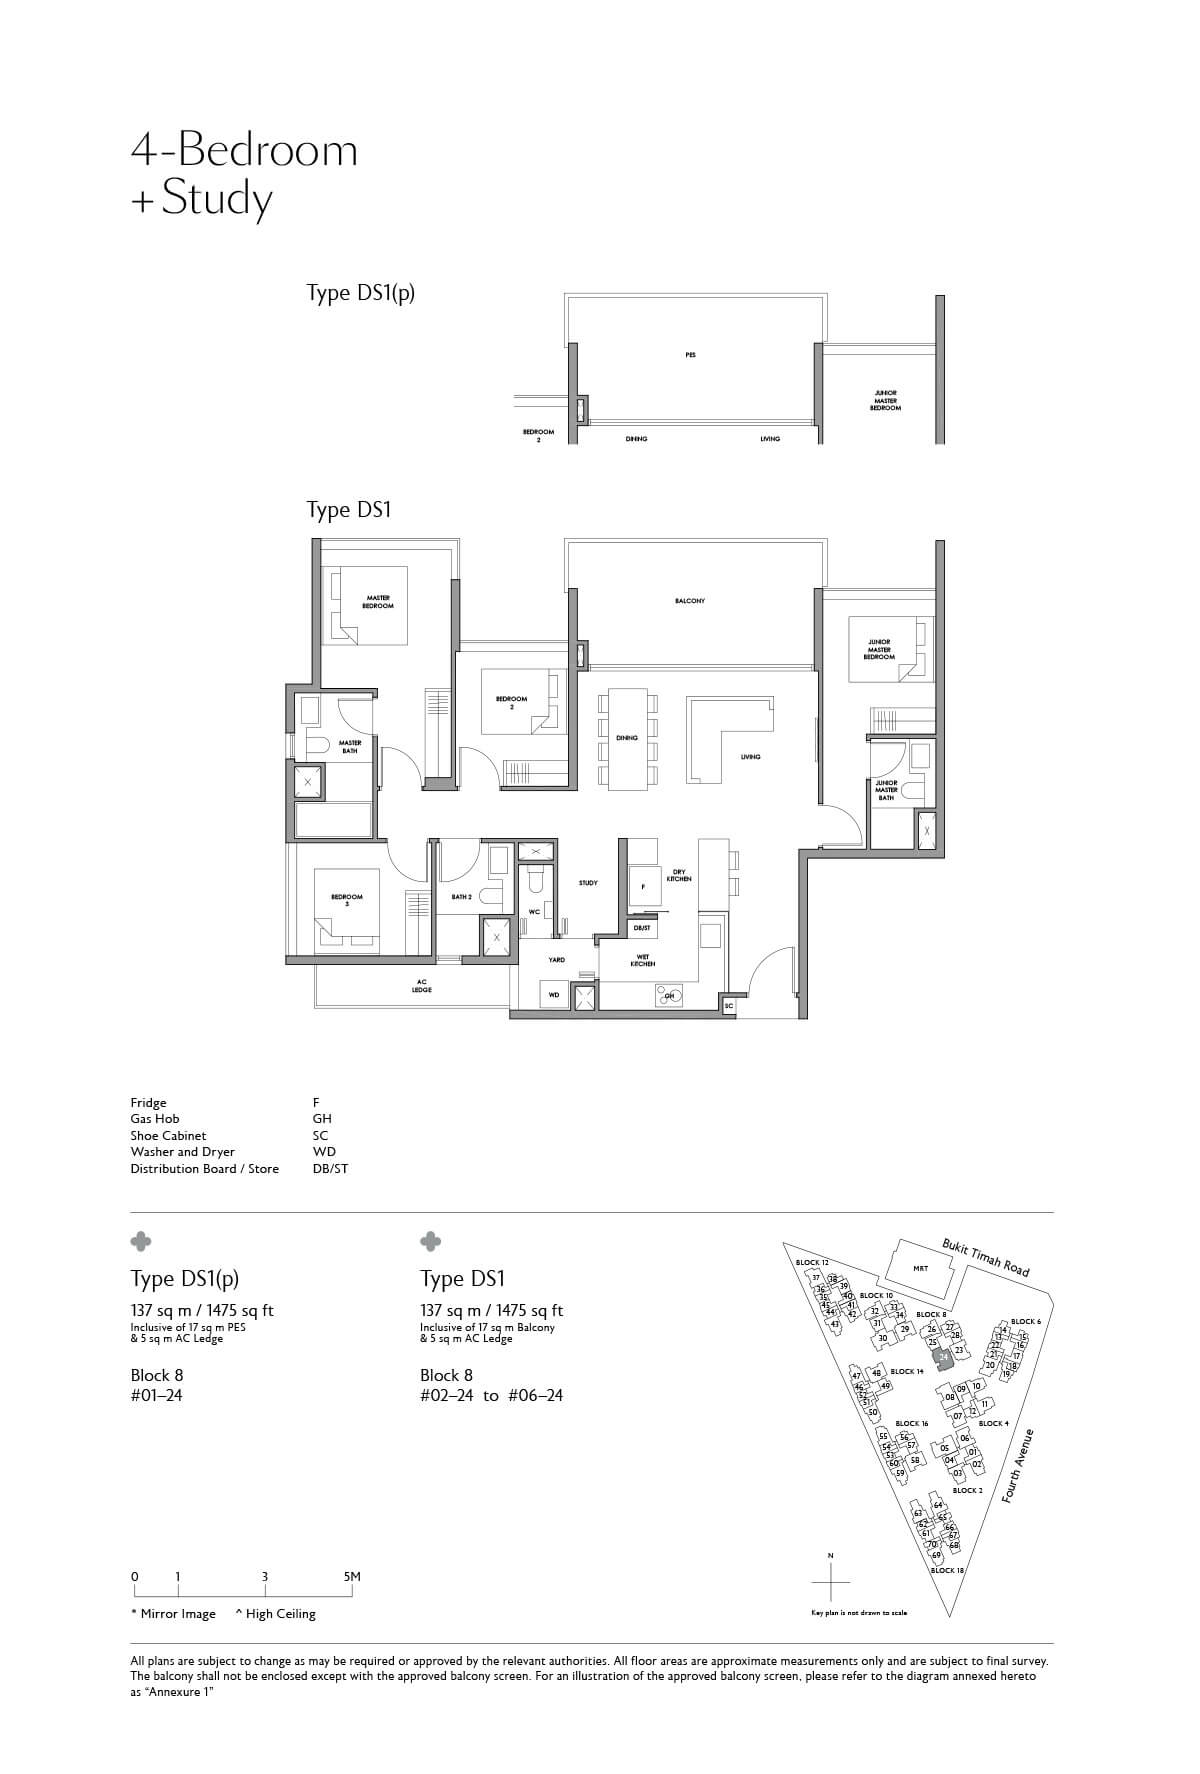 Fourth Avenue Residences Floor Plan 4 Bedroom Study Type DS1